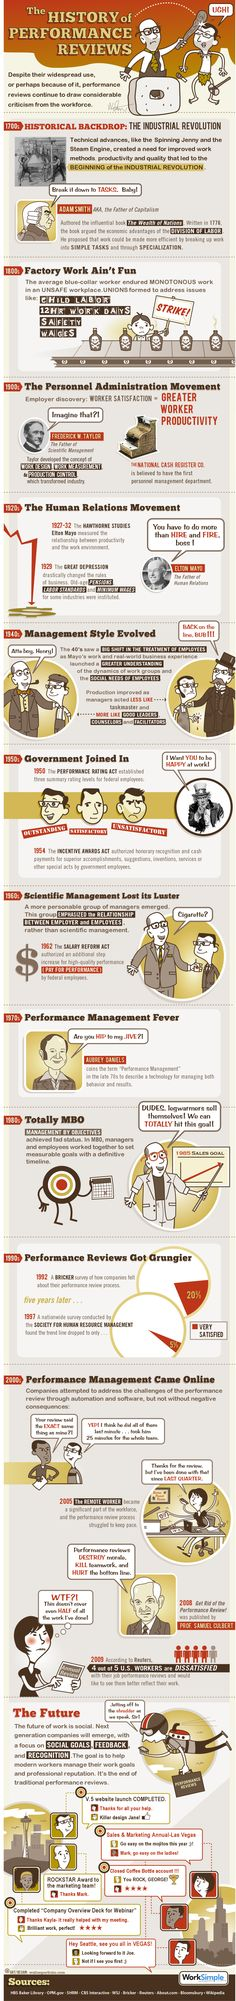 (The History of Performance Reviews.) Why Job Performance Reviews Are Going to Get Social [INFOGRAPHIC].